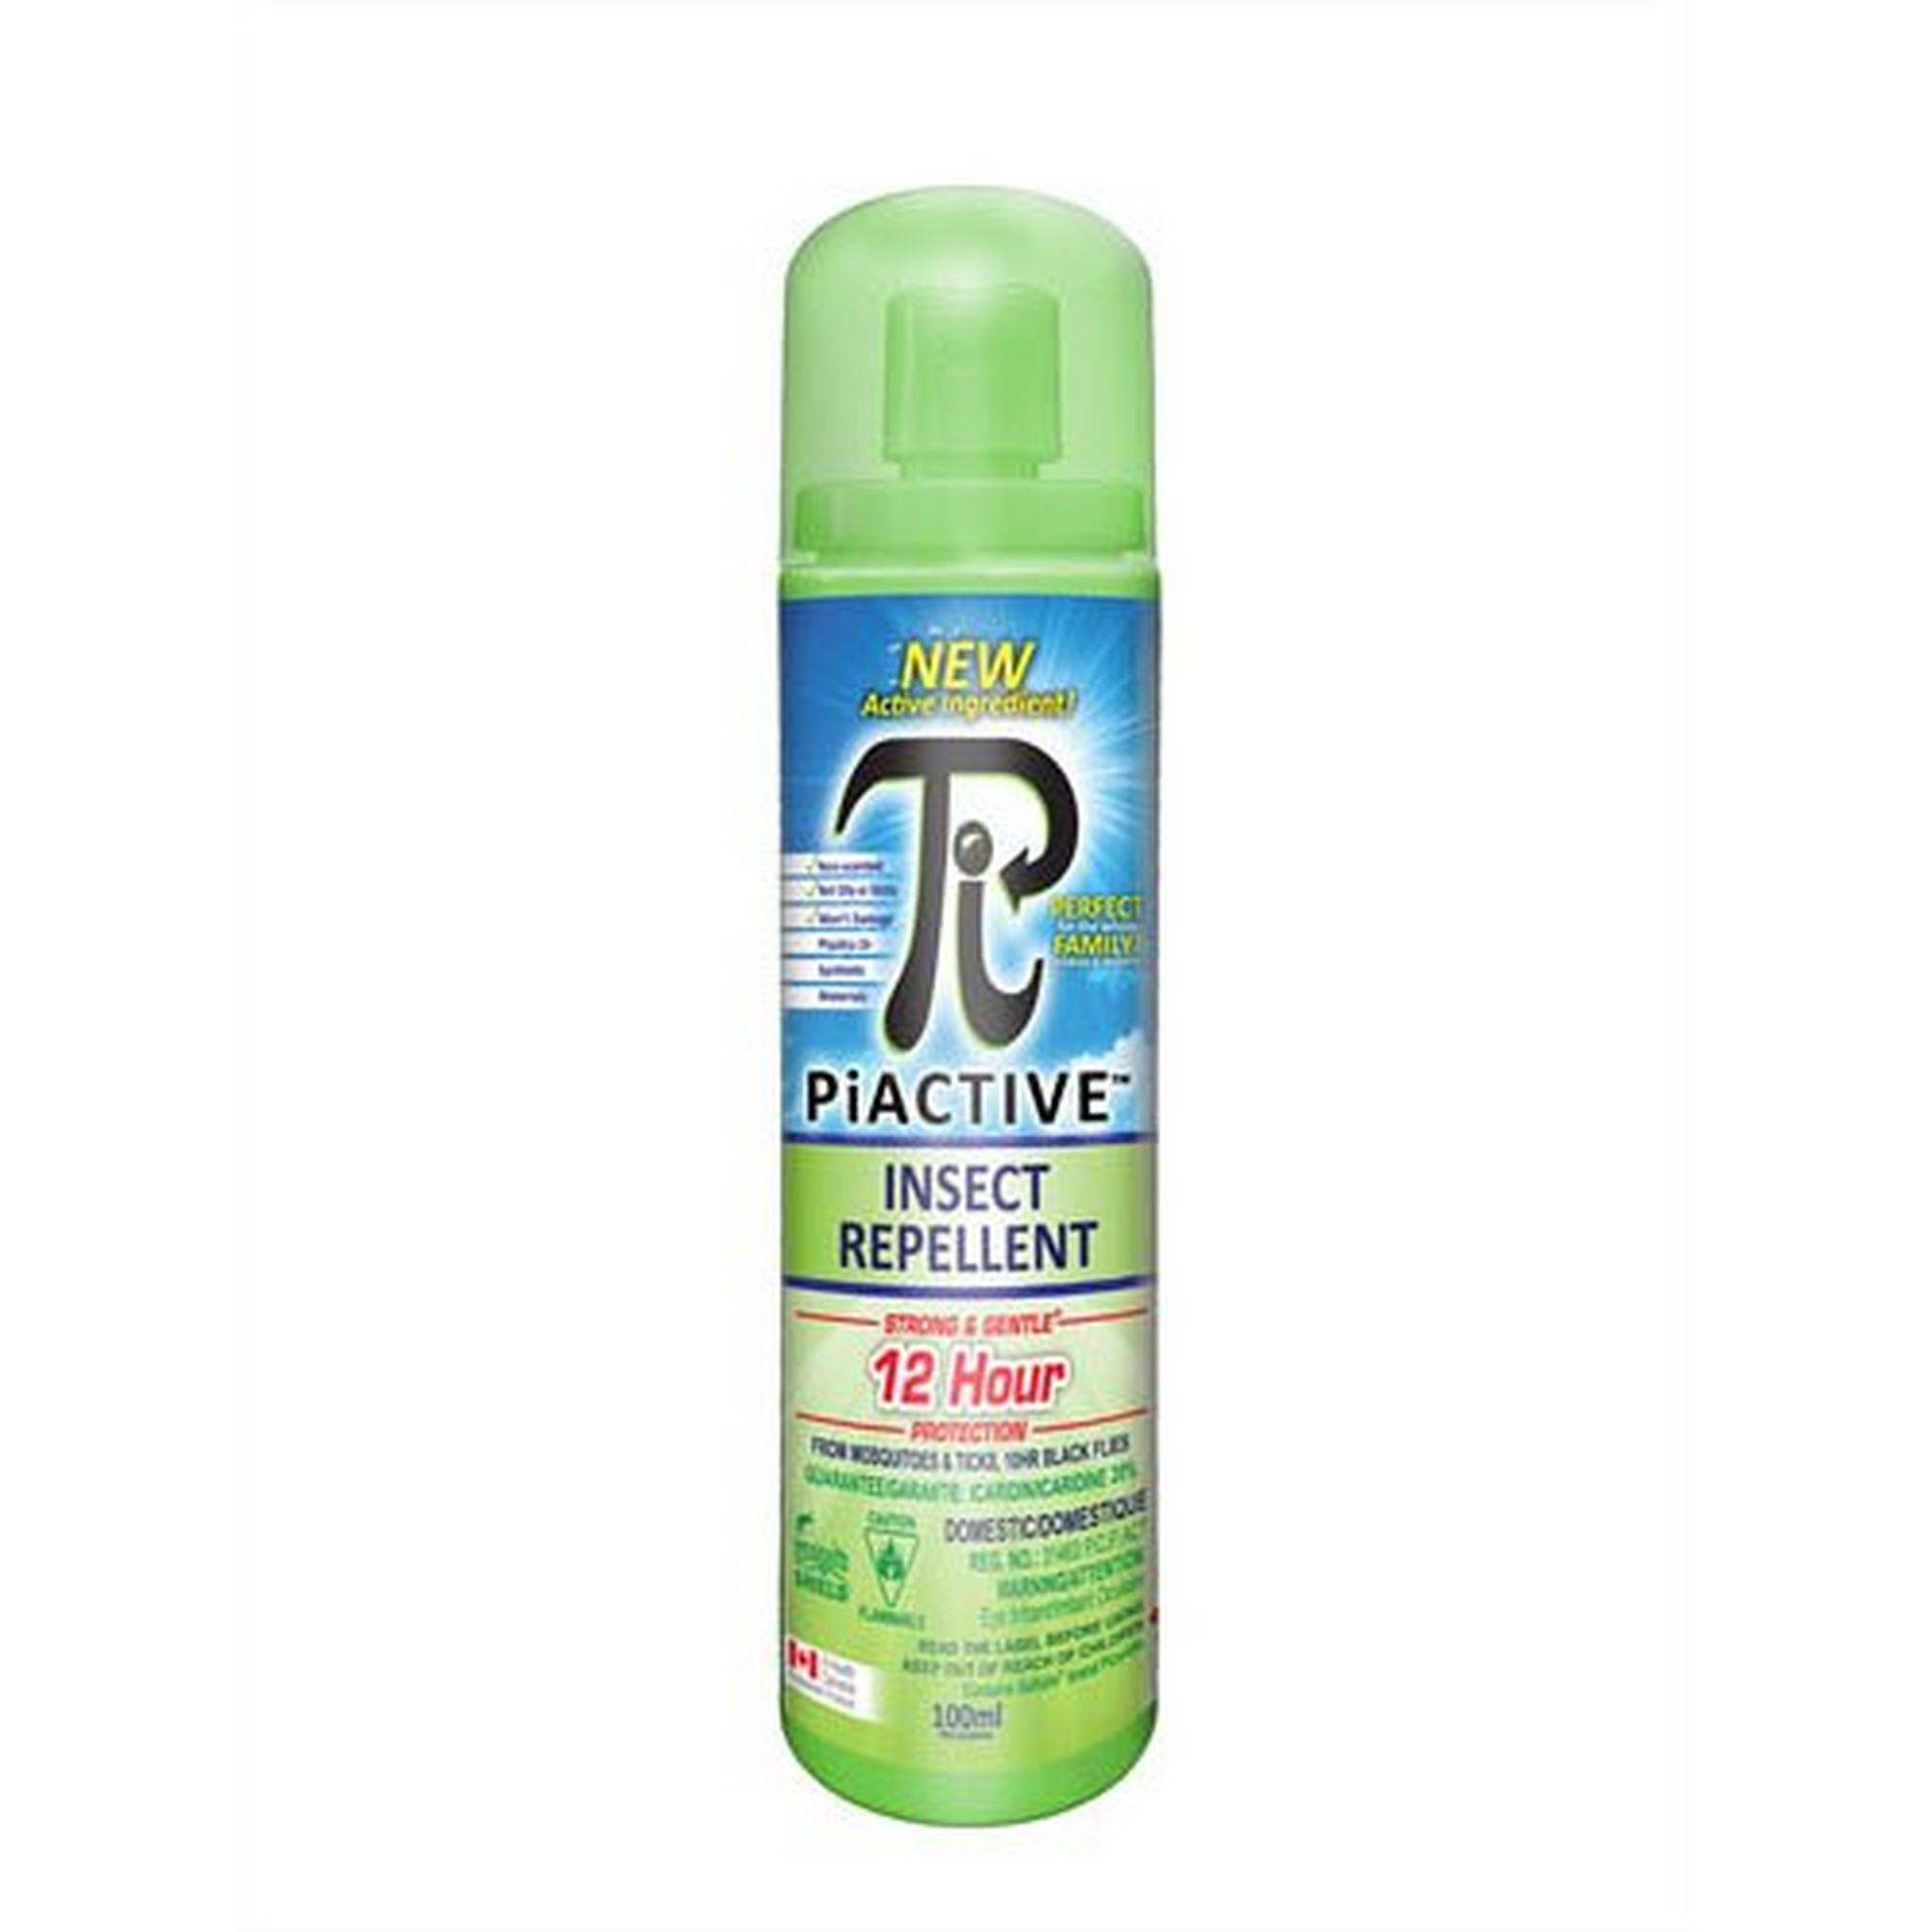 PiActive Bug Repellent